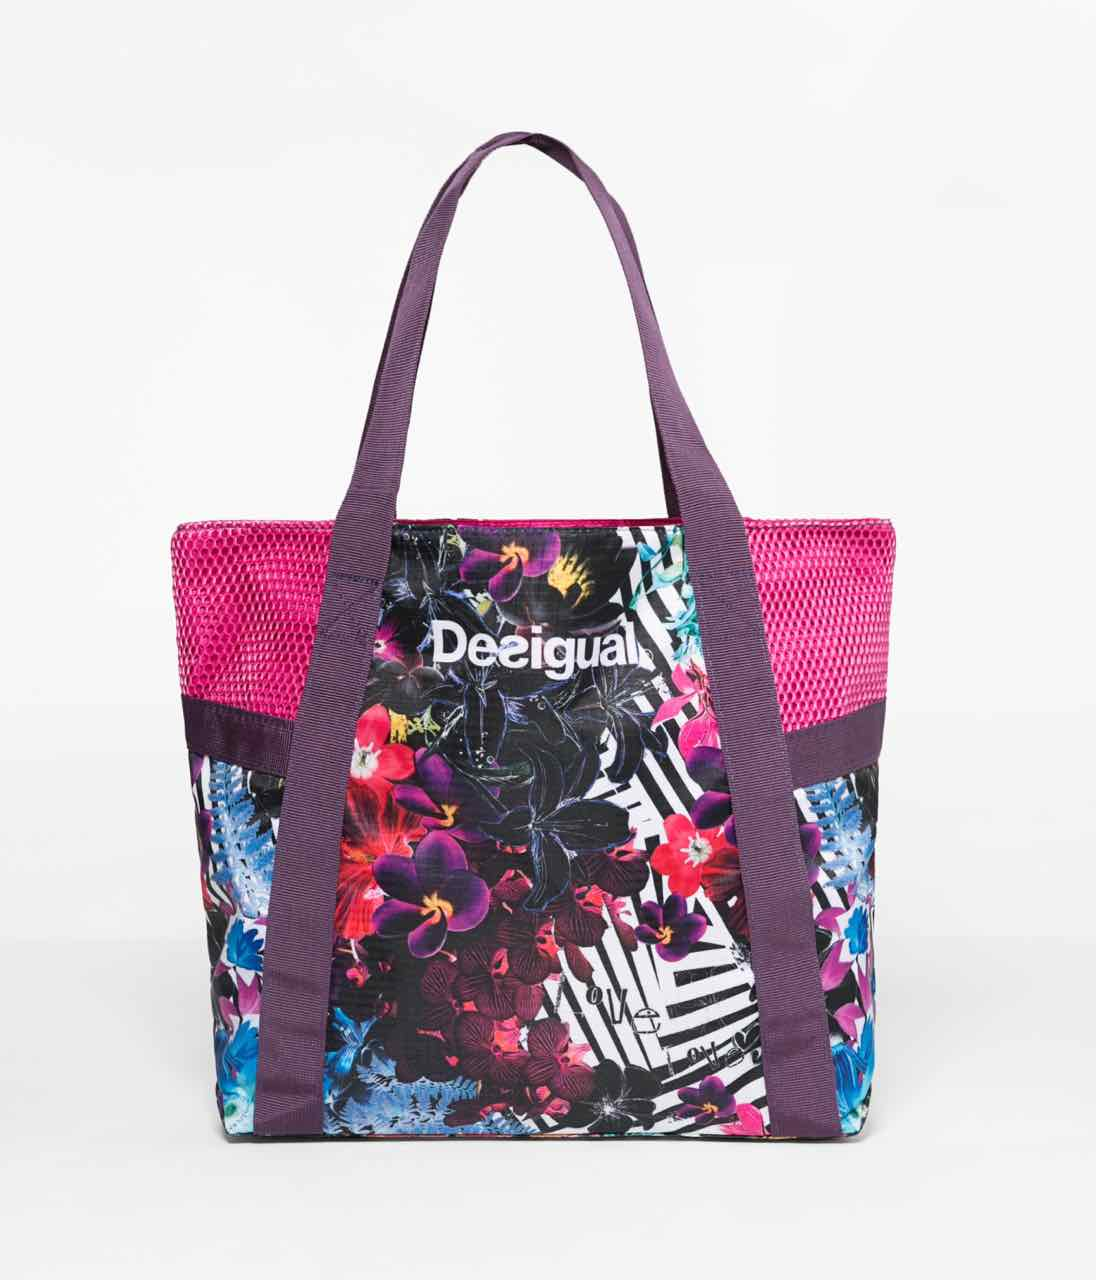 67X5SA4_3125-Desigual-Shopping-Bag-A Buy Online